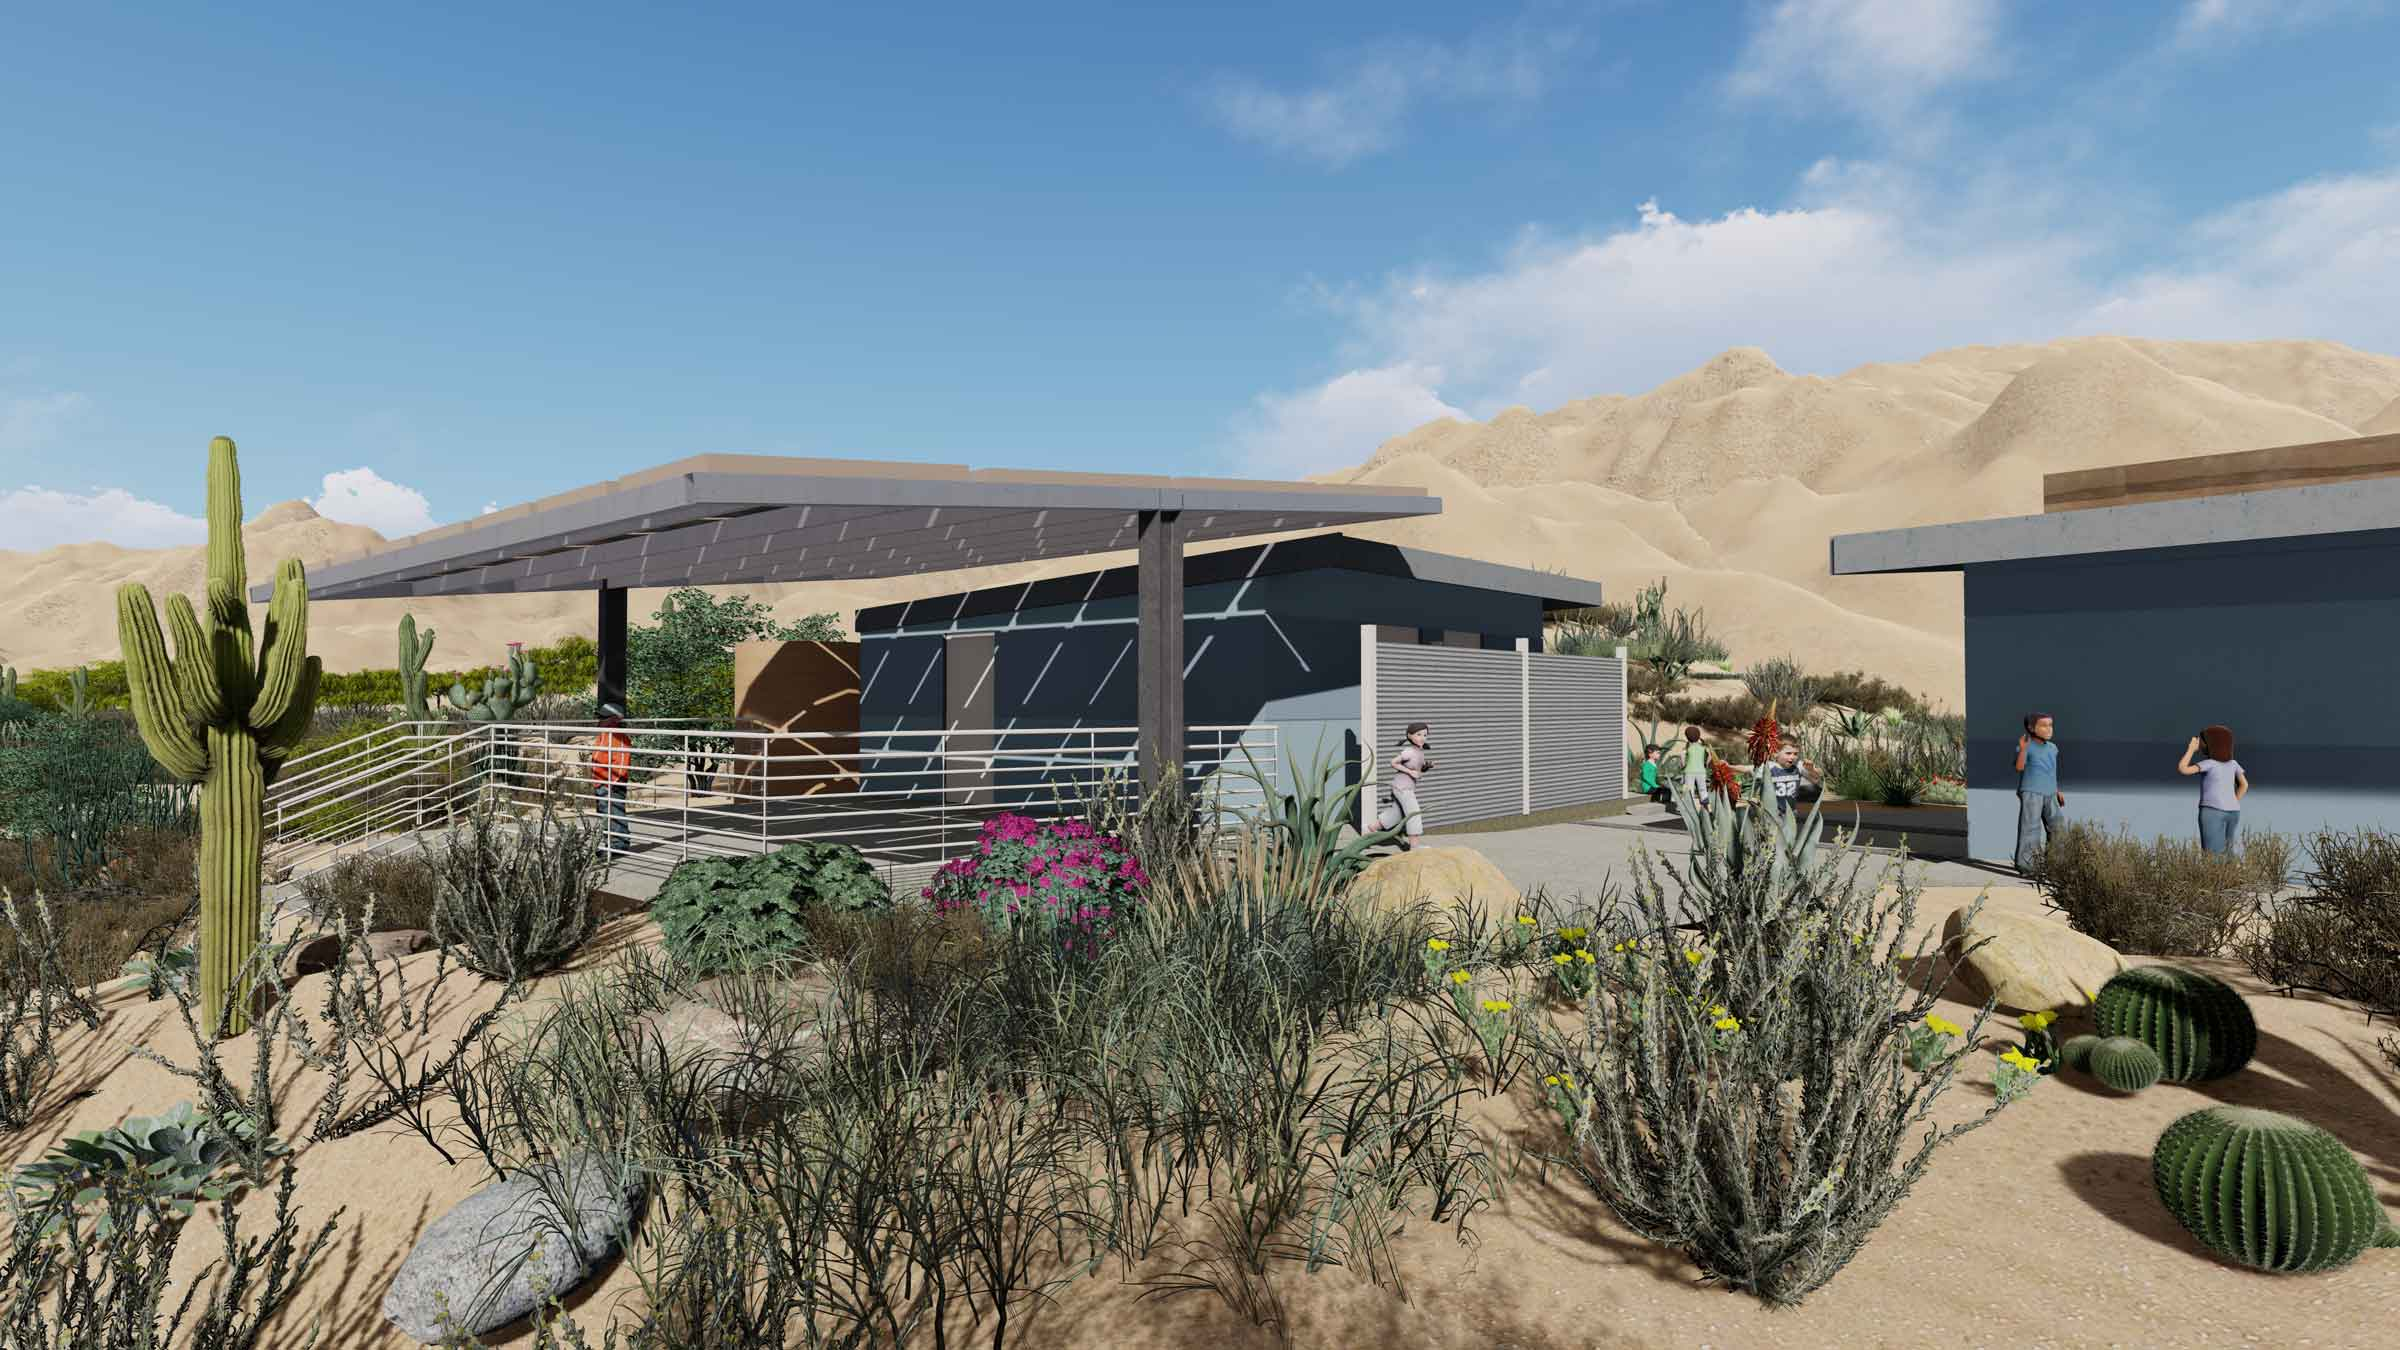 Rainwater, harvested from increased roof surface, will feed surrounding native planting areas.